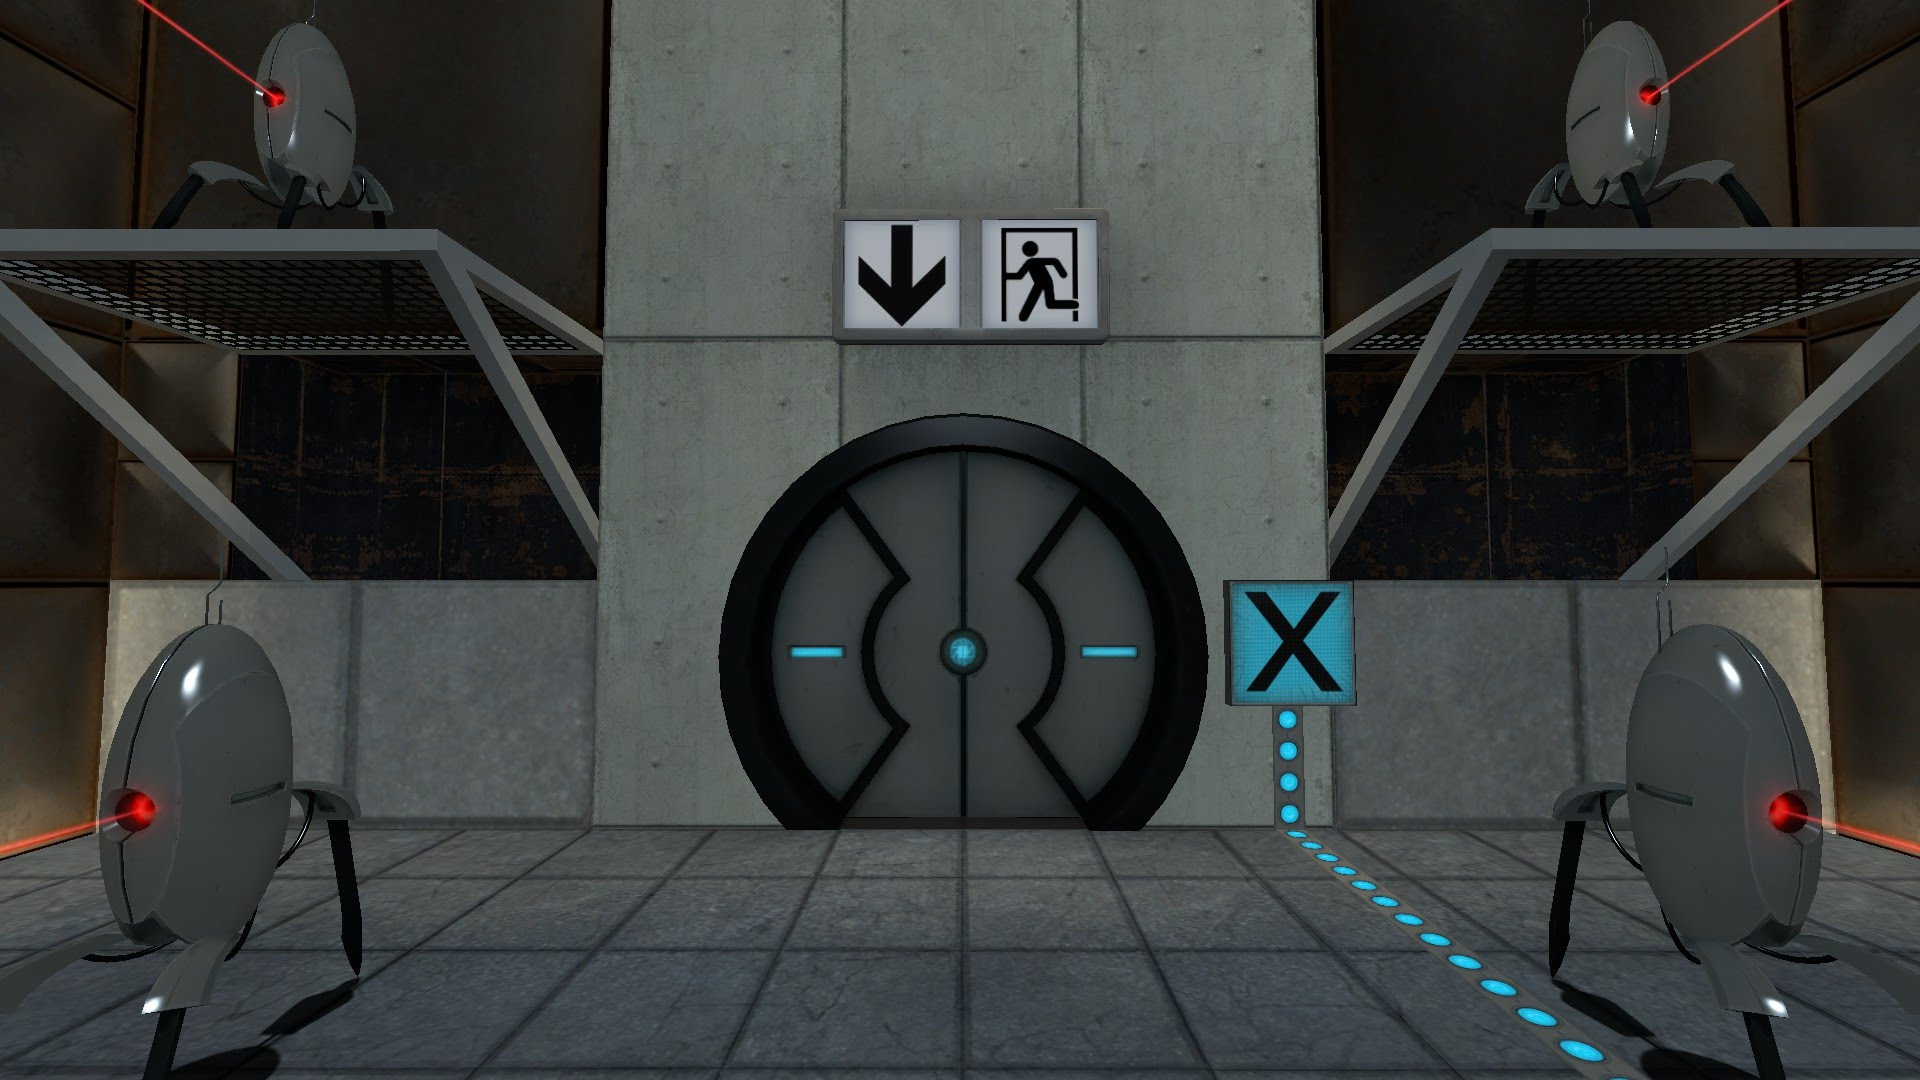 The exit door is guarded by turrets.